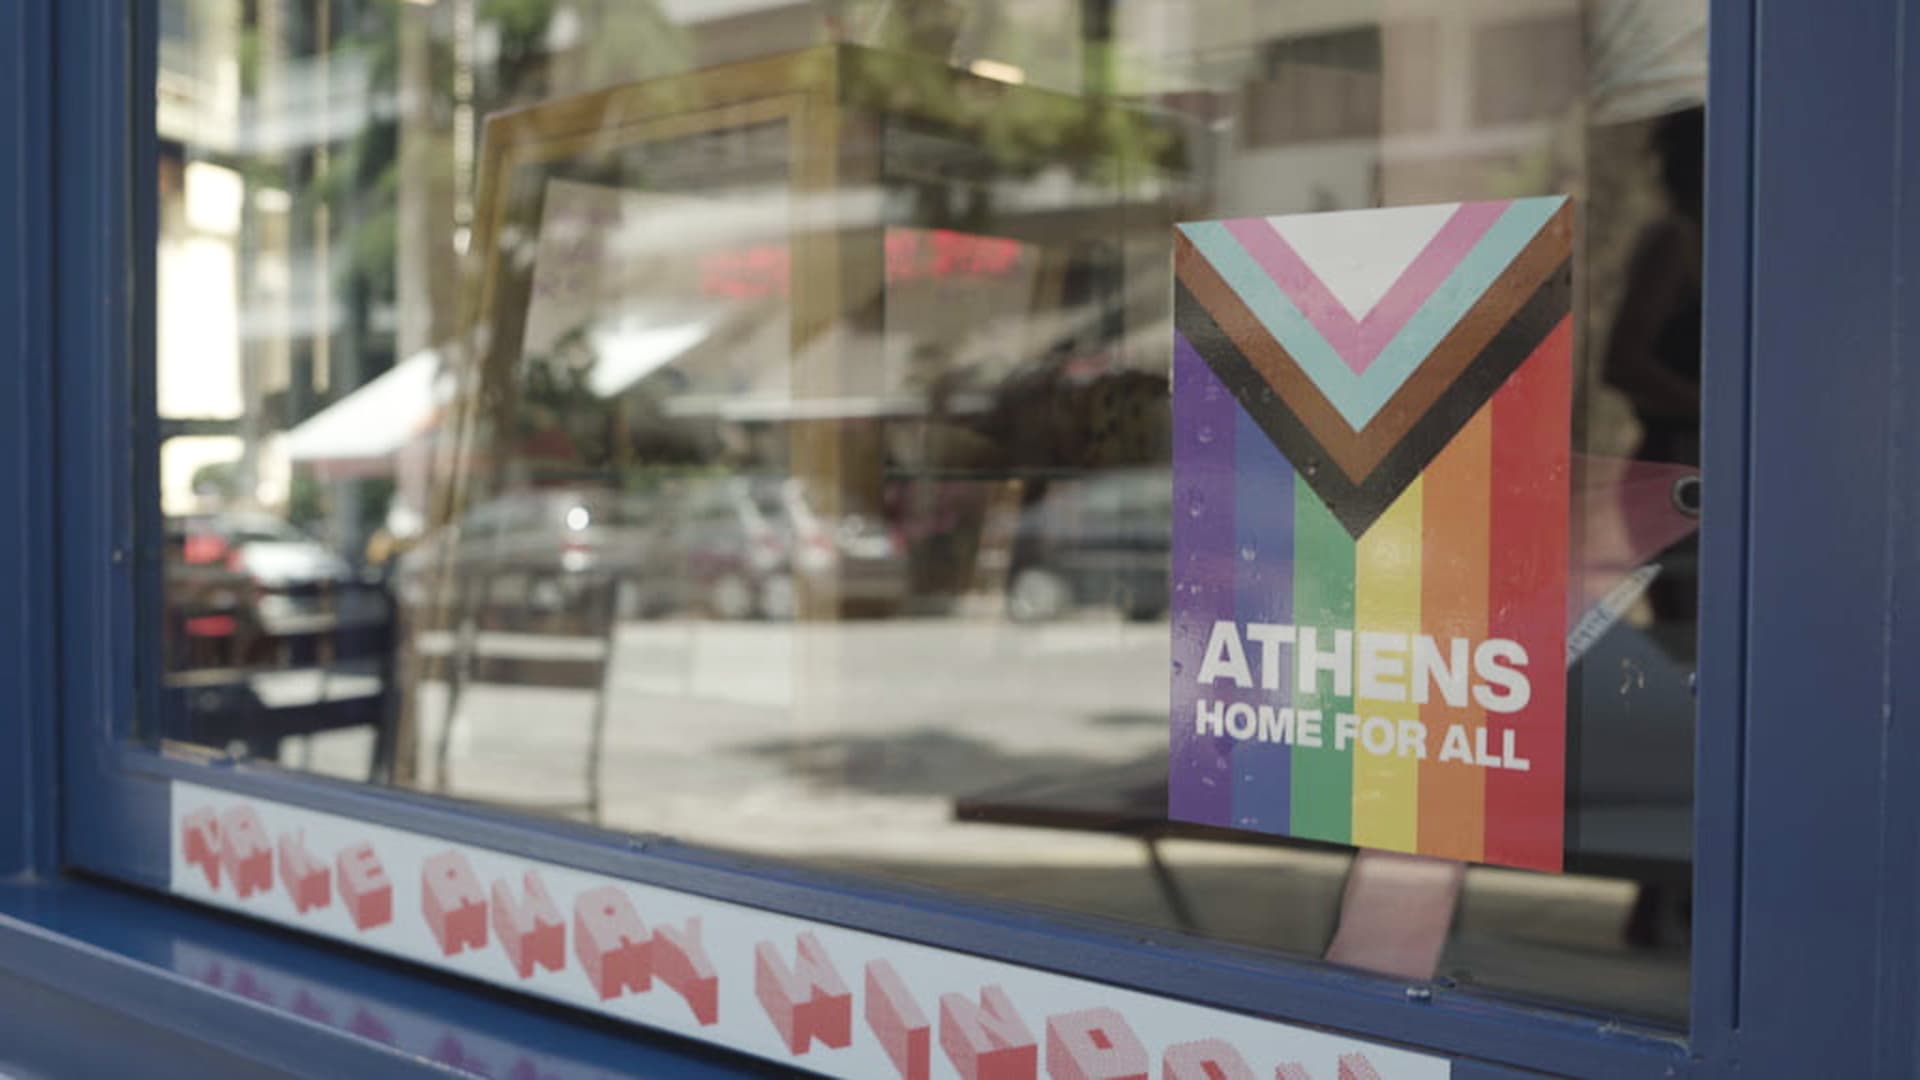 ATHENS HOME FOR ALL